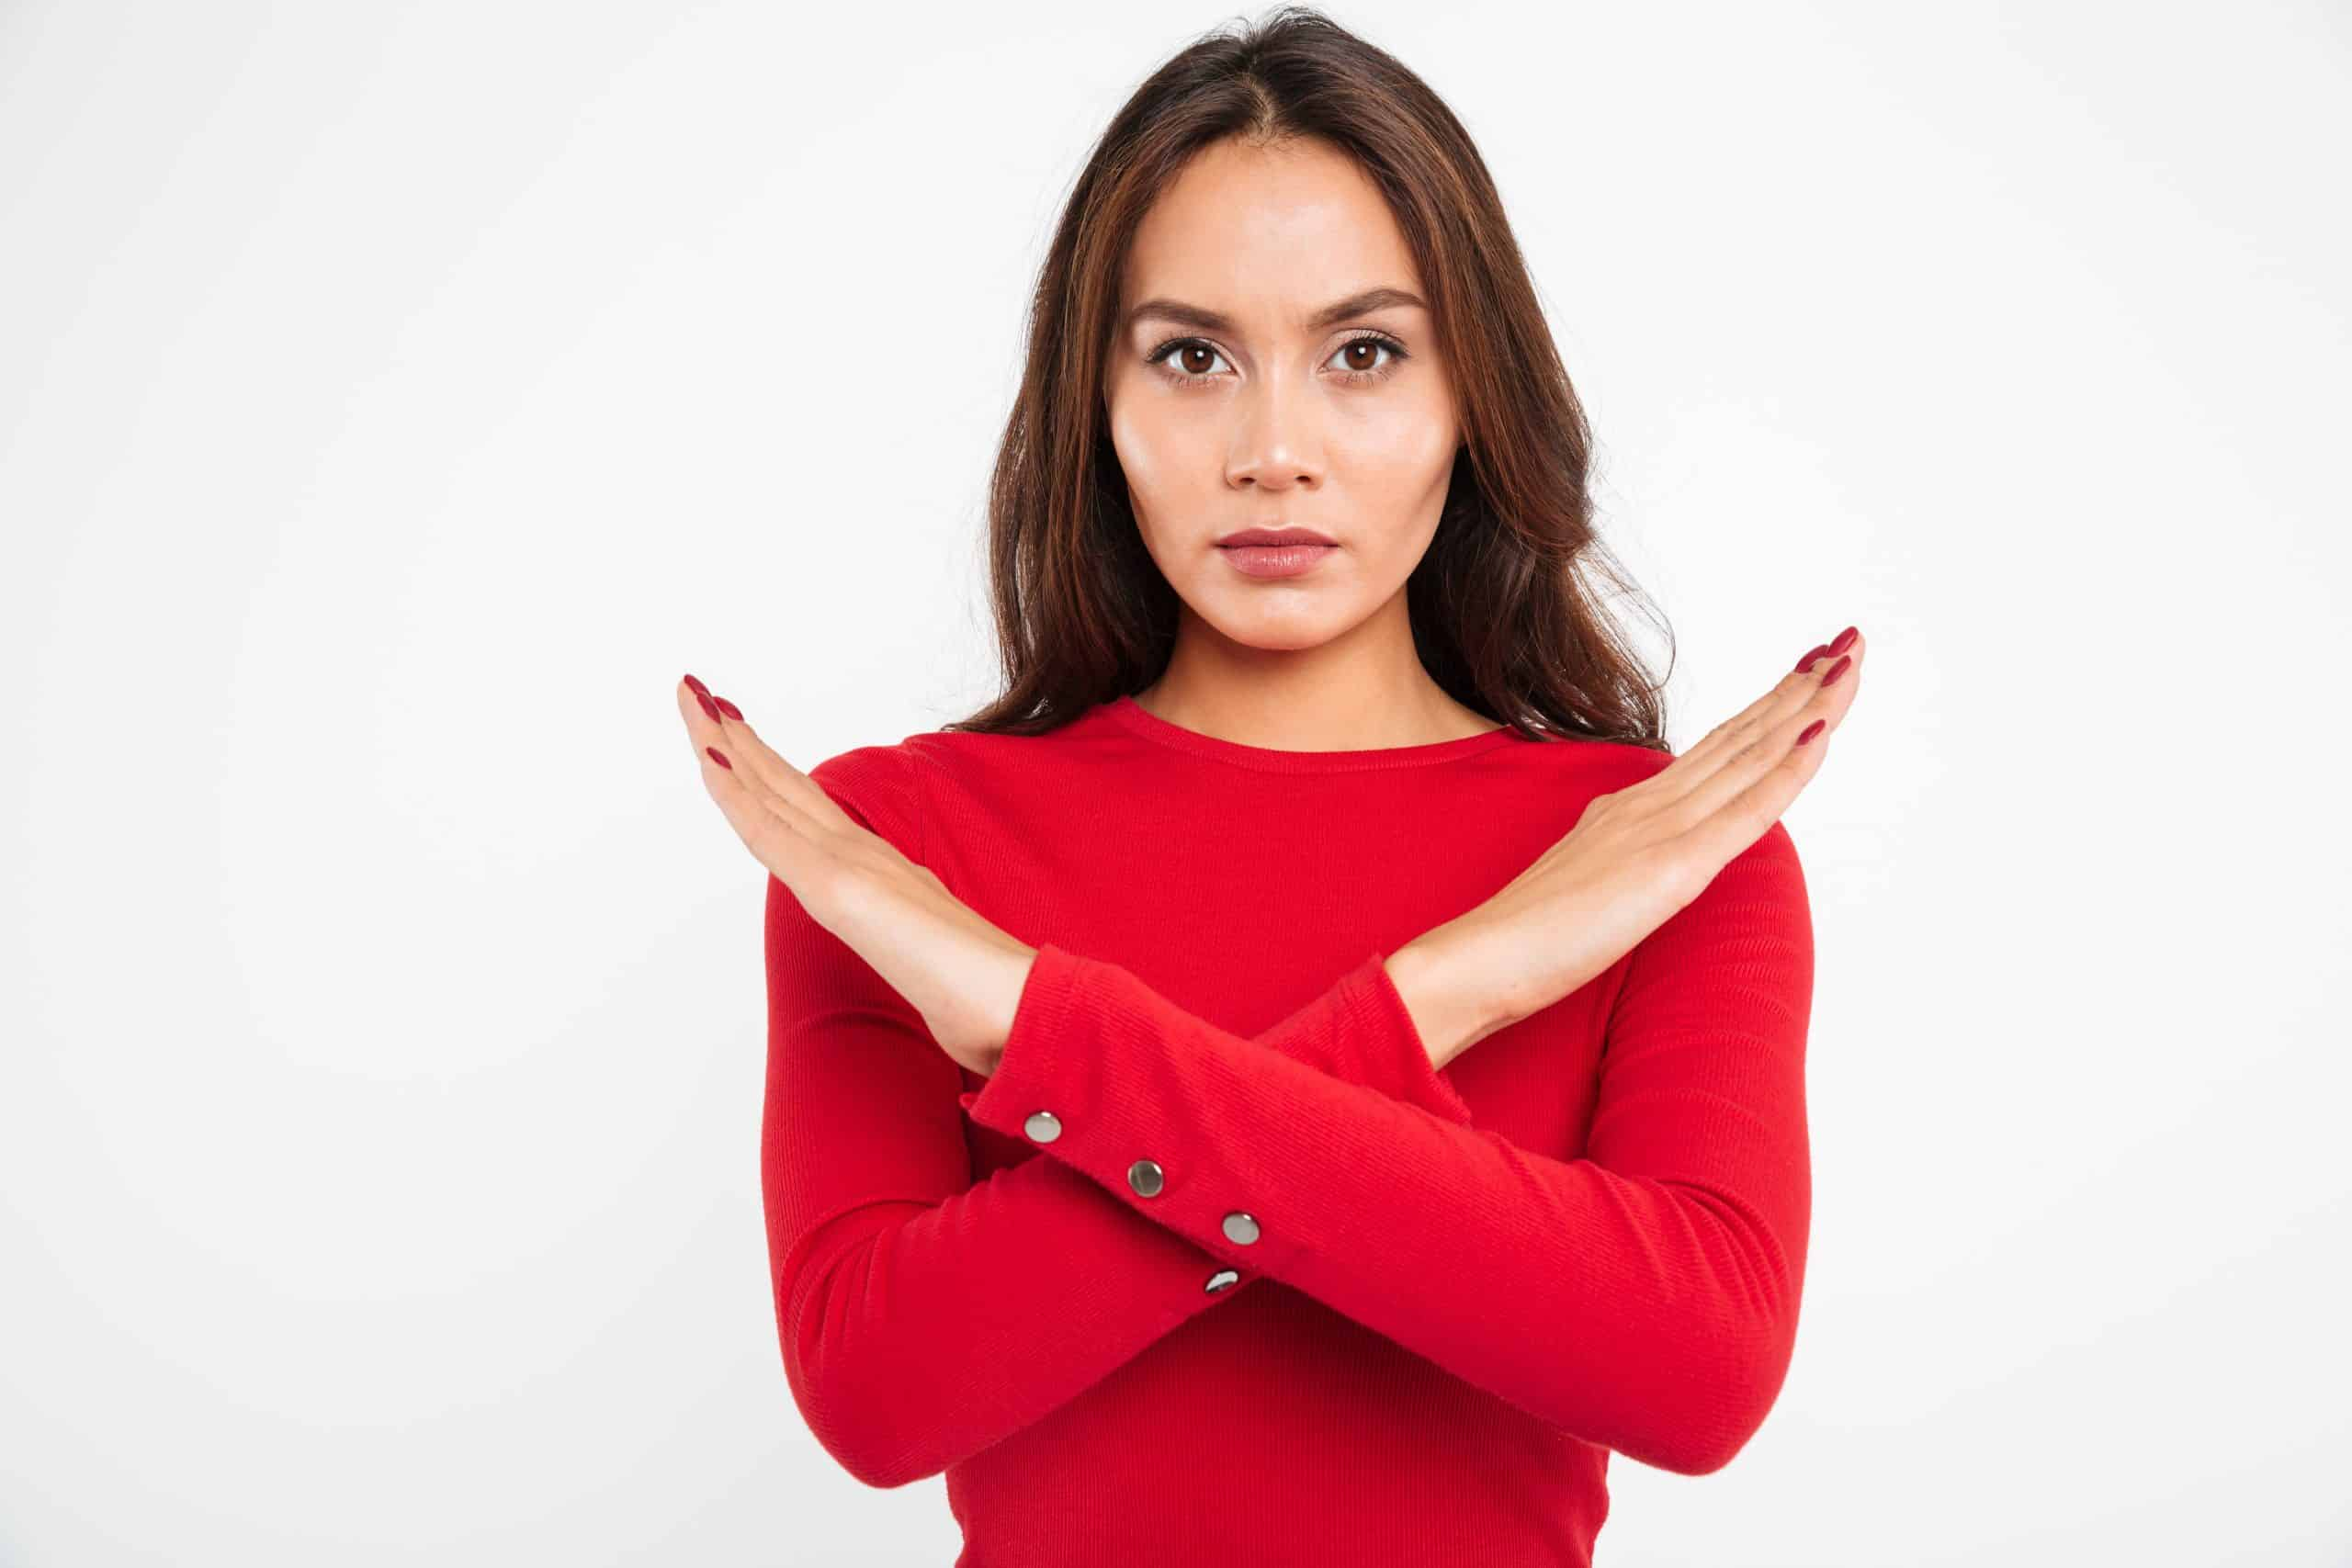 woman showing stop gesture with crossed hands